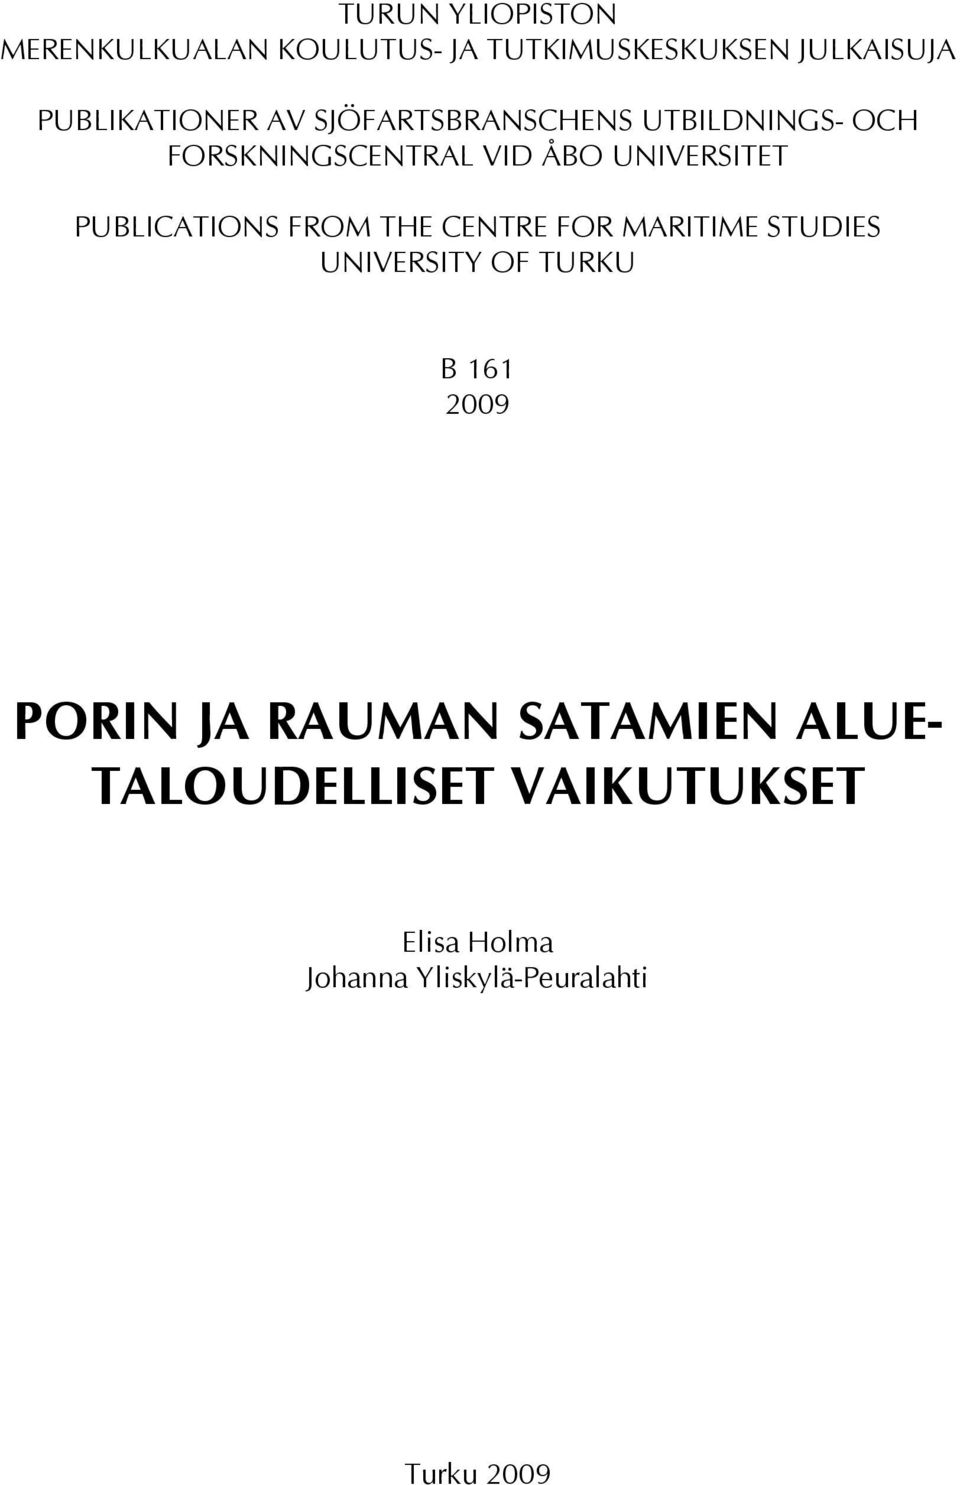 PUBLICATIONS FROM THE CENTRE FOR MARITIME STUDIES UNIVERSITY OF TURKU B 161 2009 PORIN